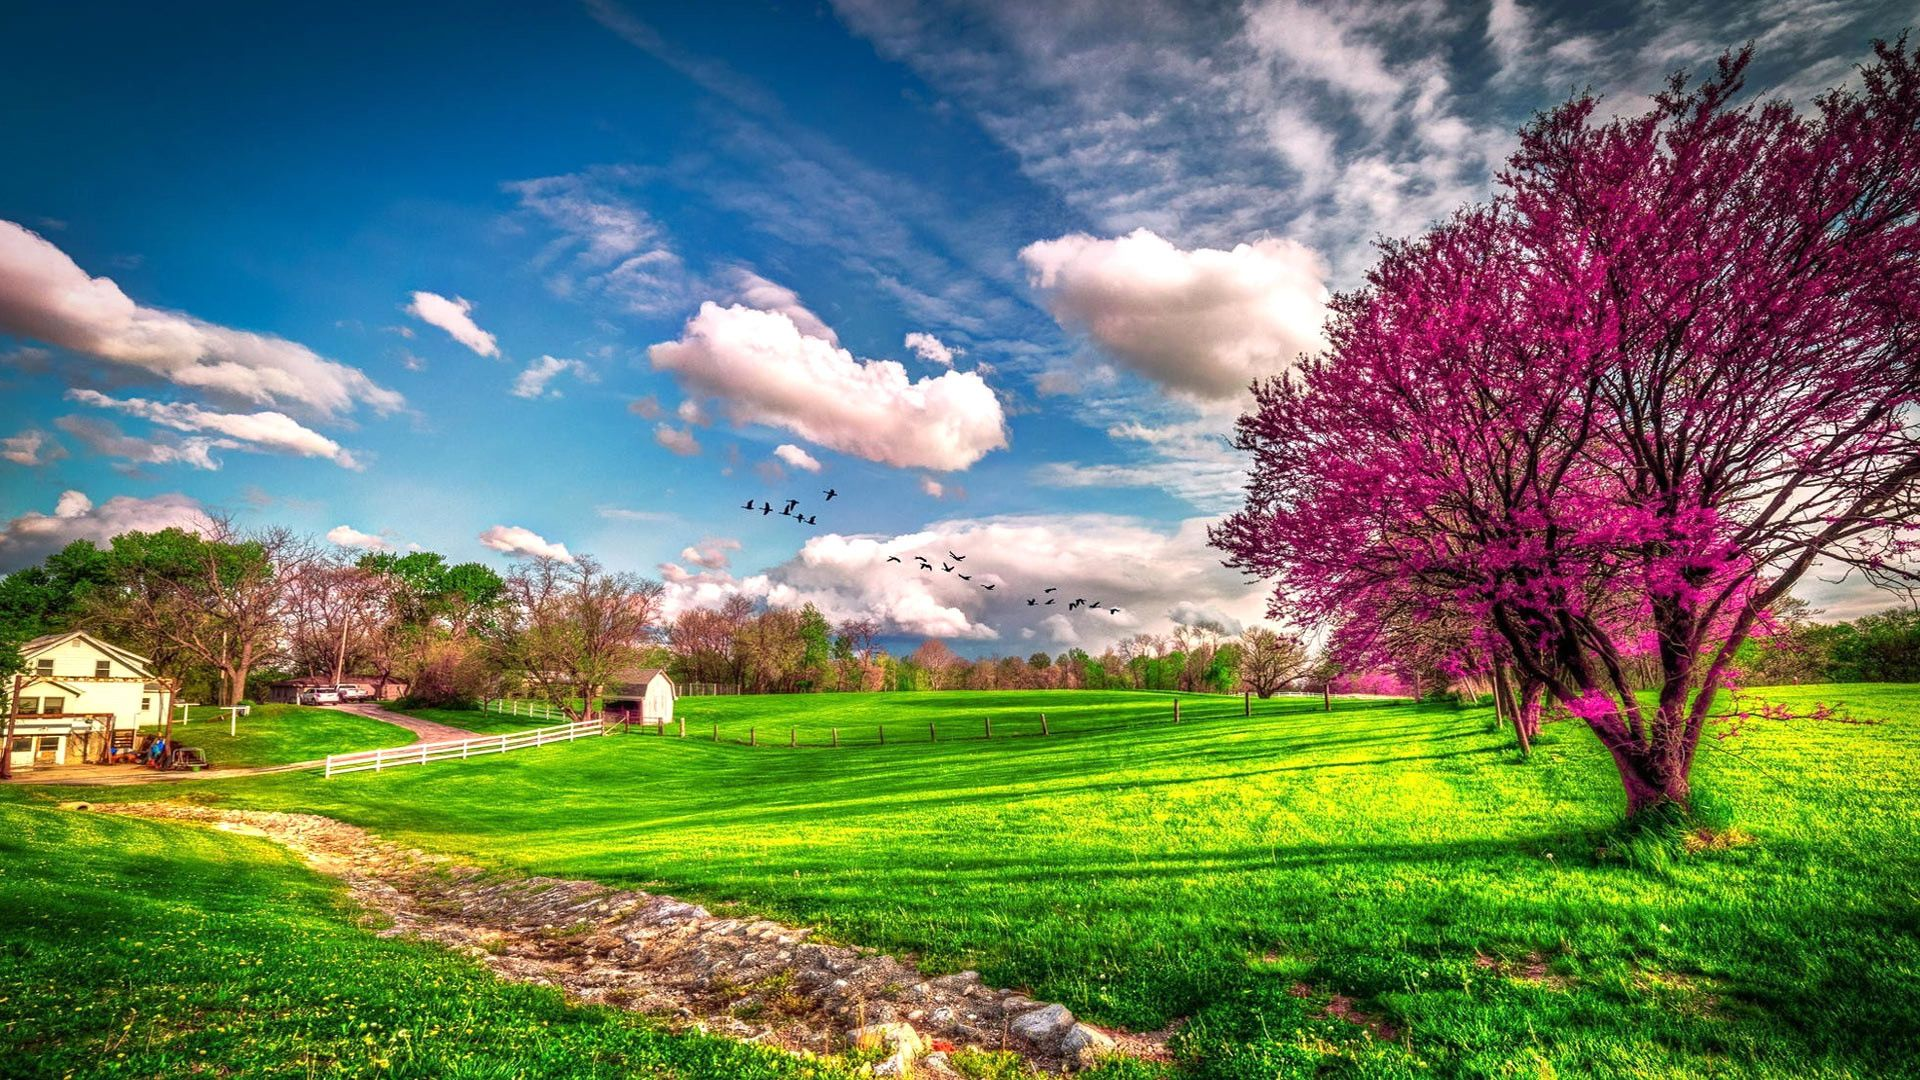 Landscape Beautiful Spring Nature Spring Wallpapers